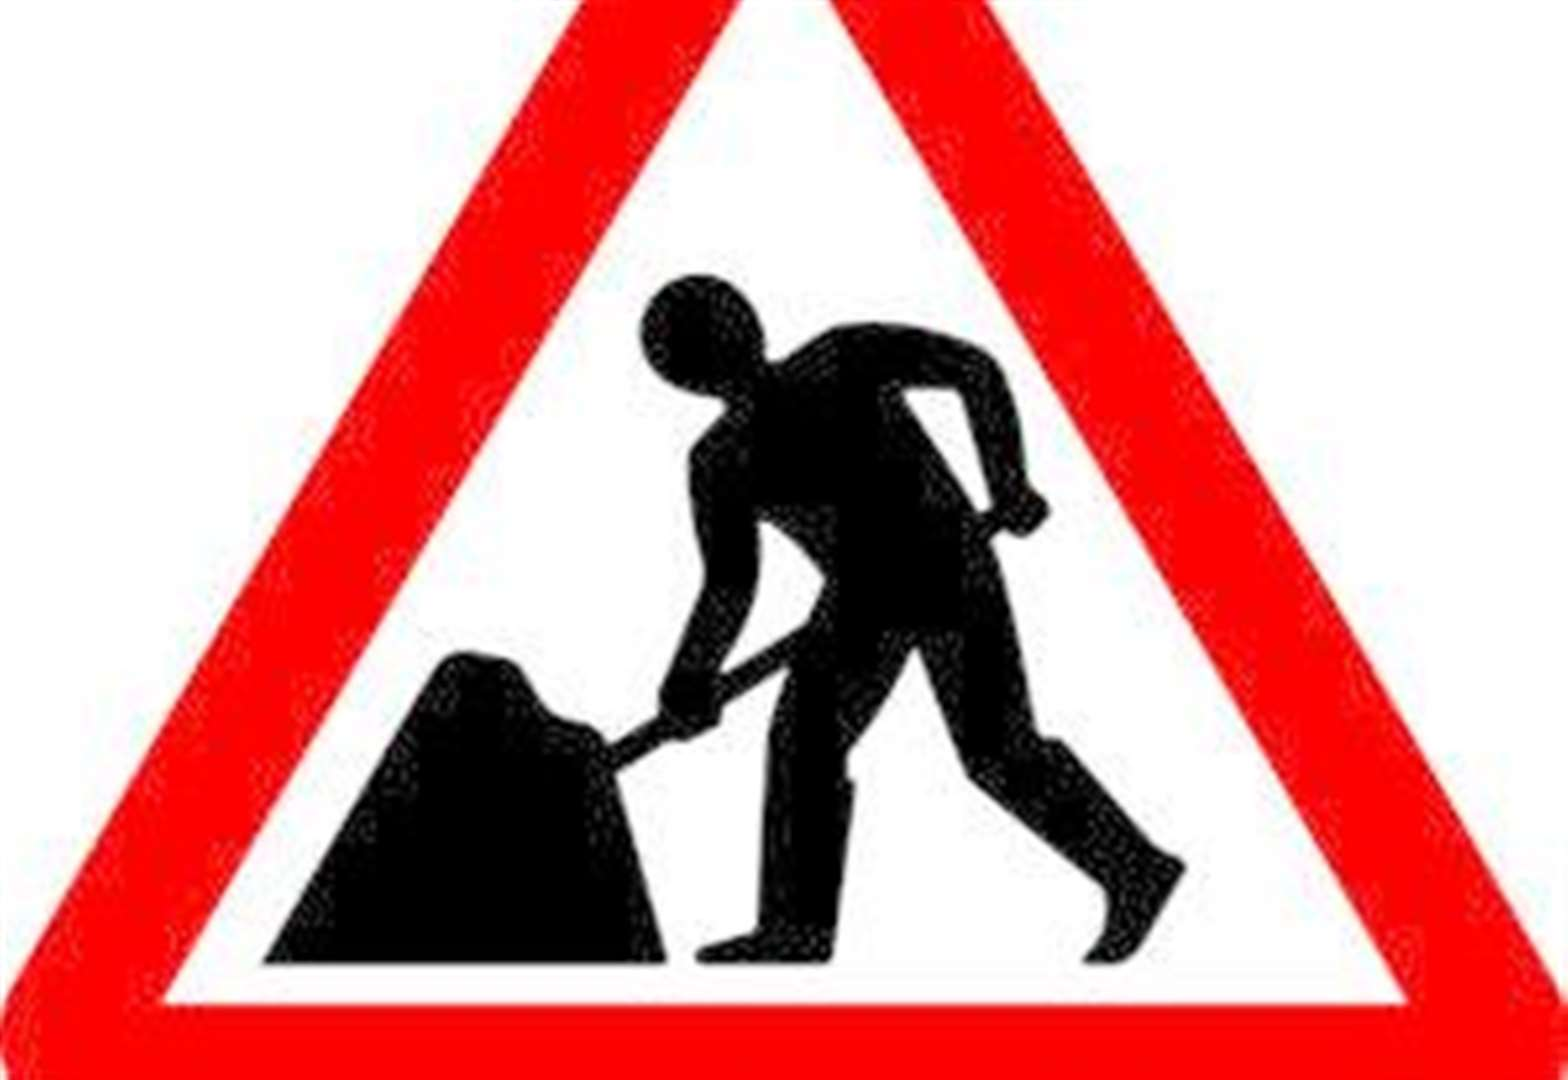 Contractors busy on the A16